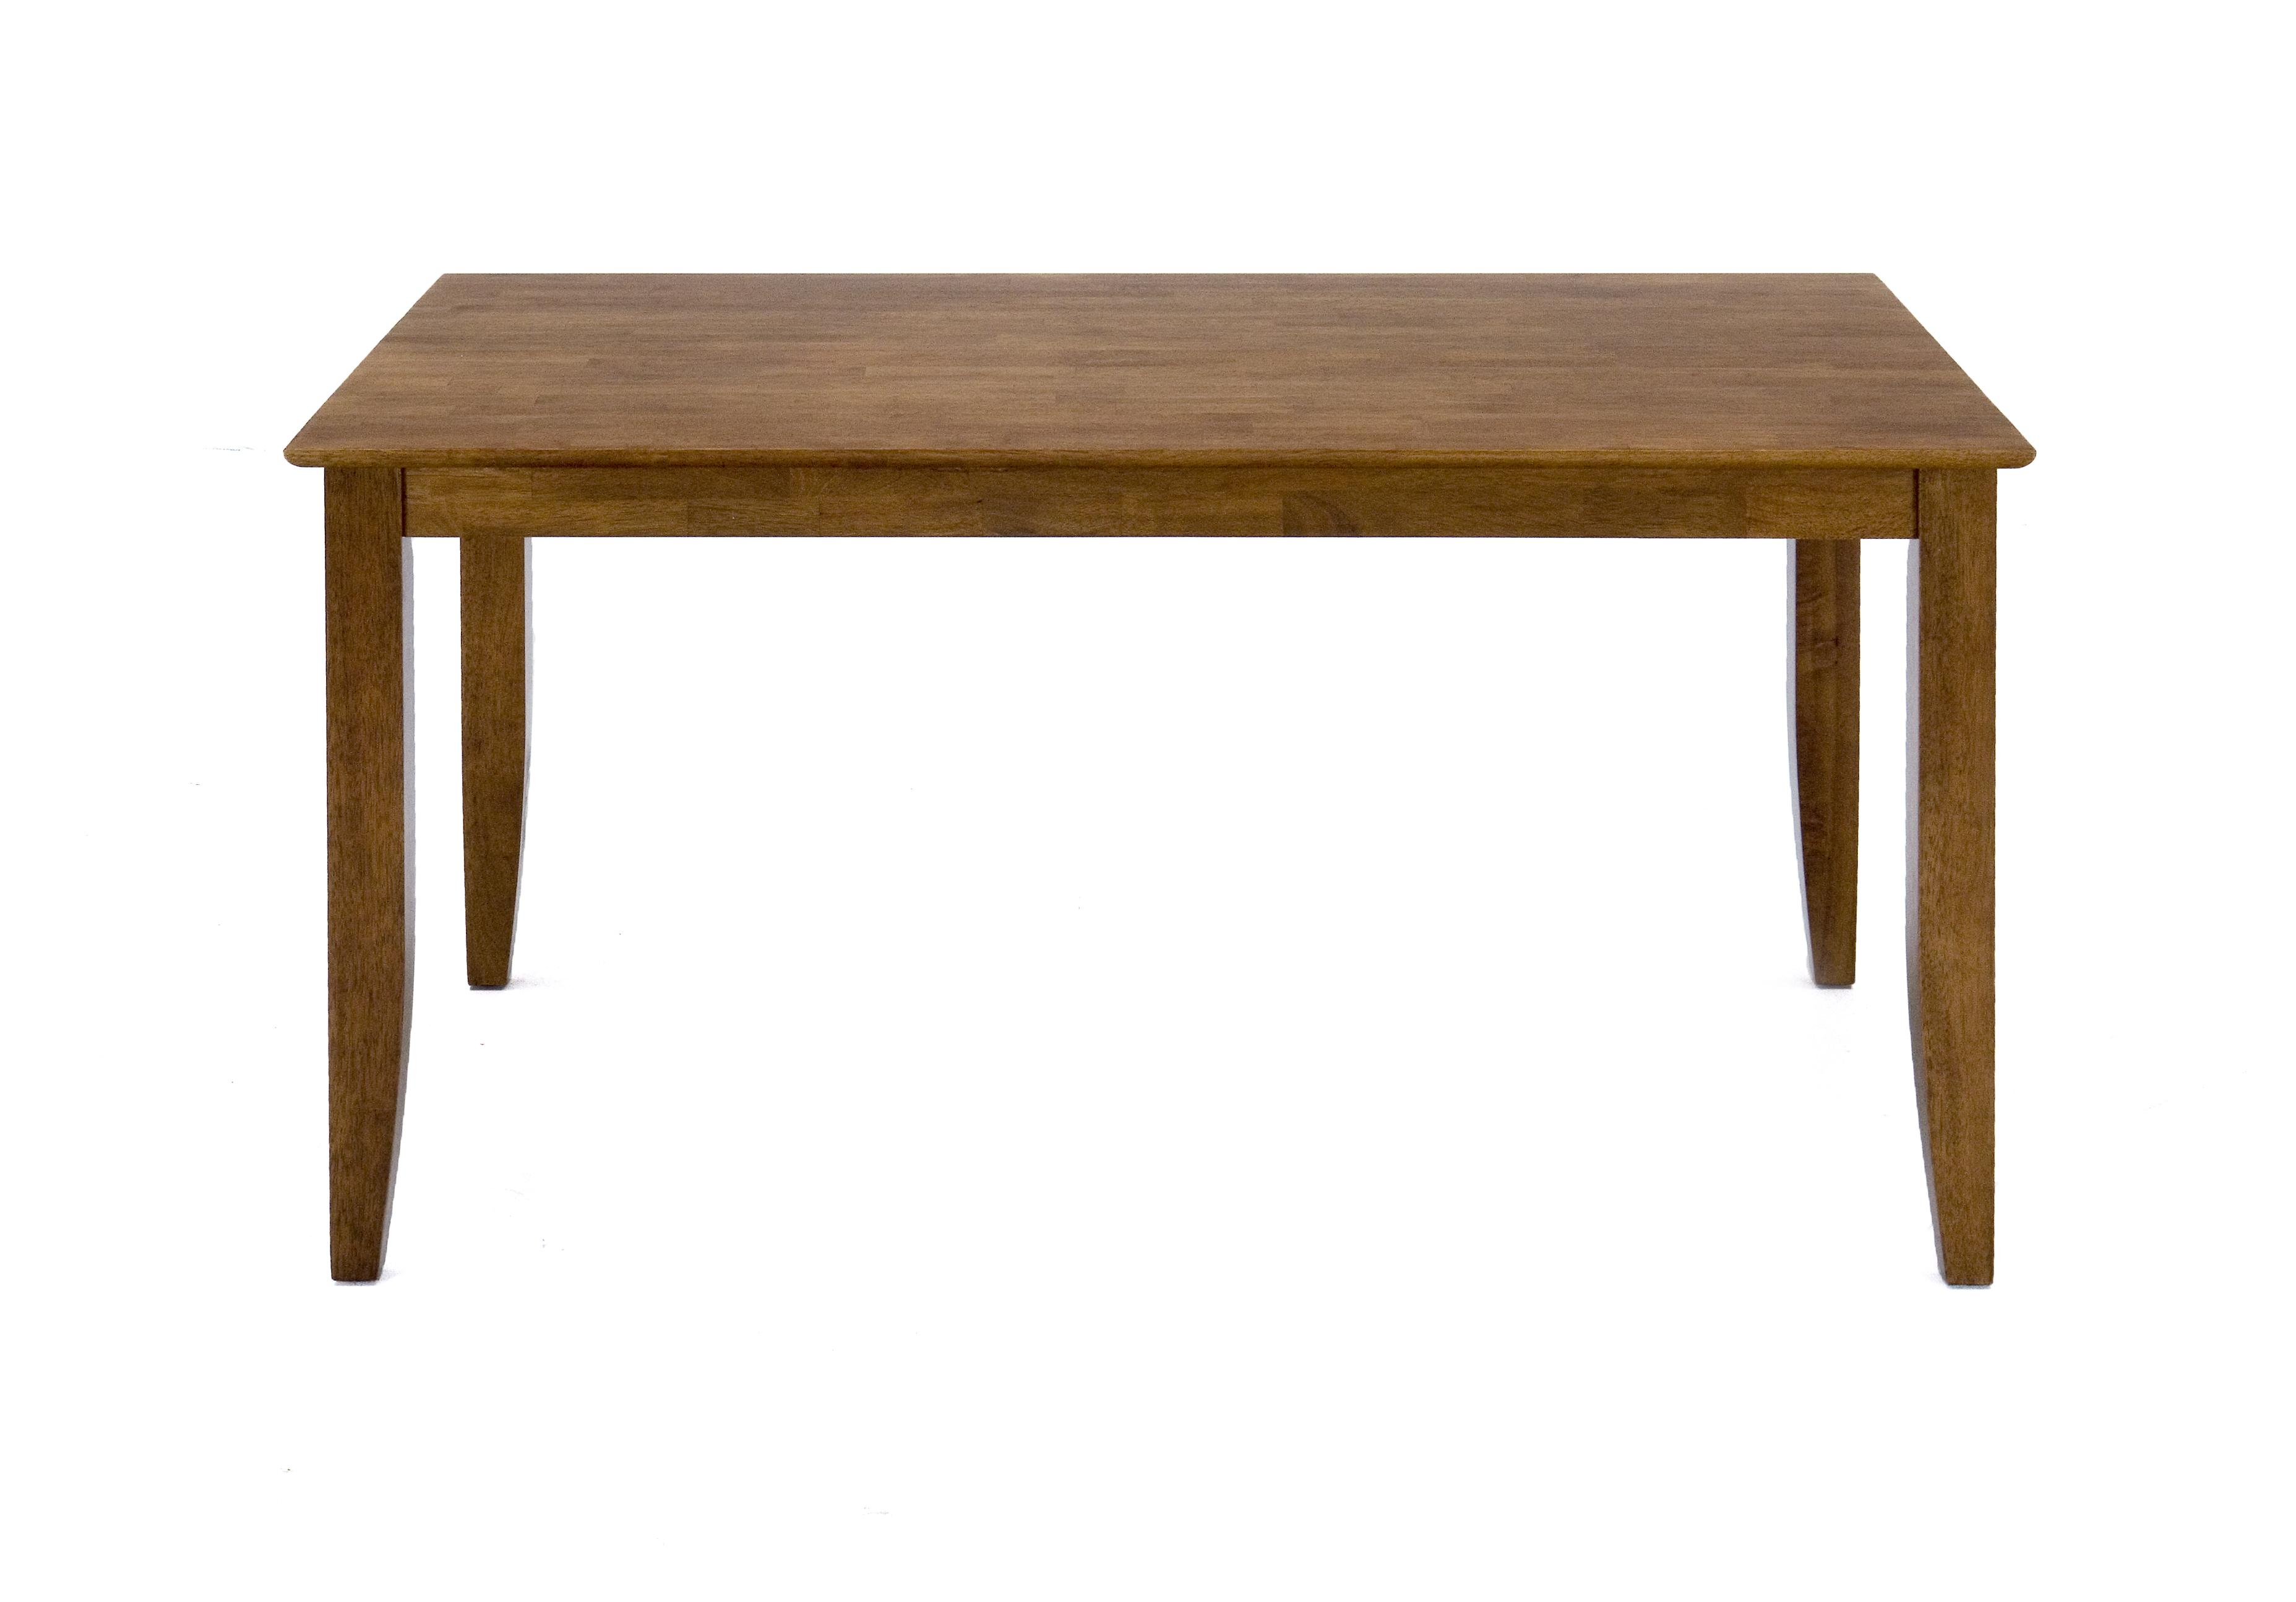 how to improve this table stability kitchen side table enter image description here